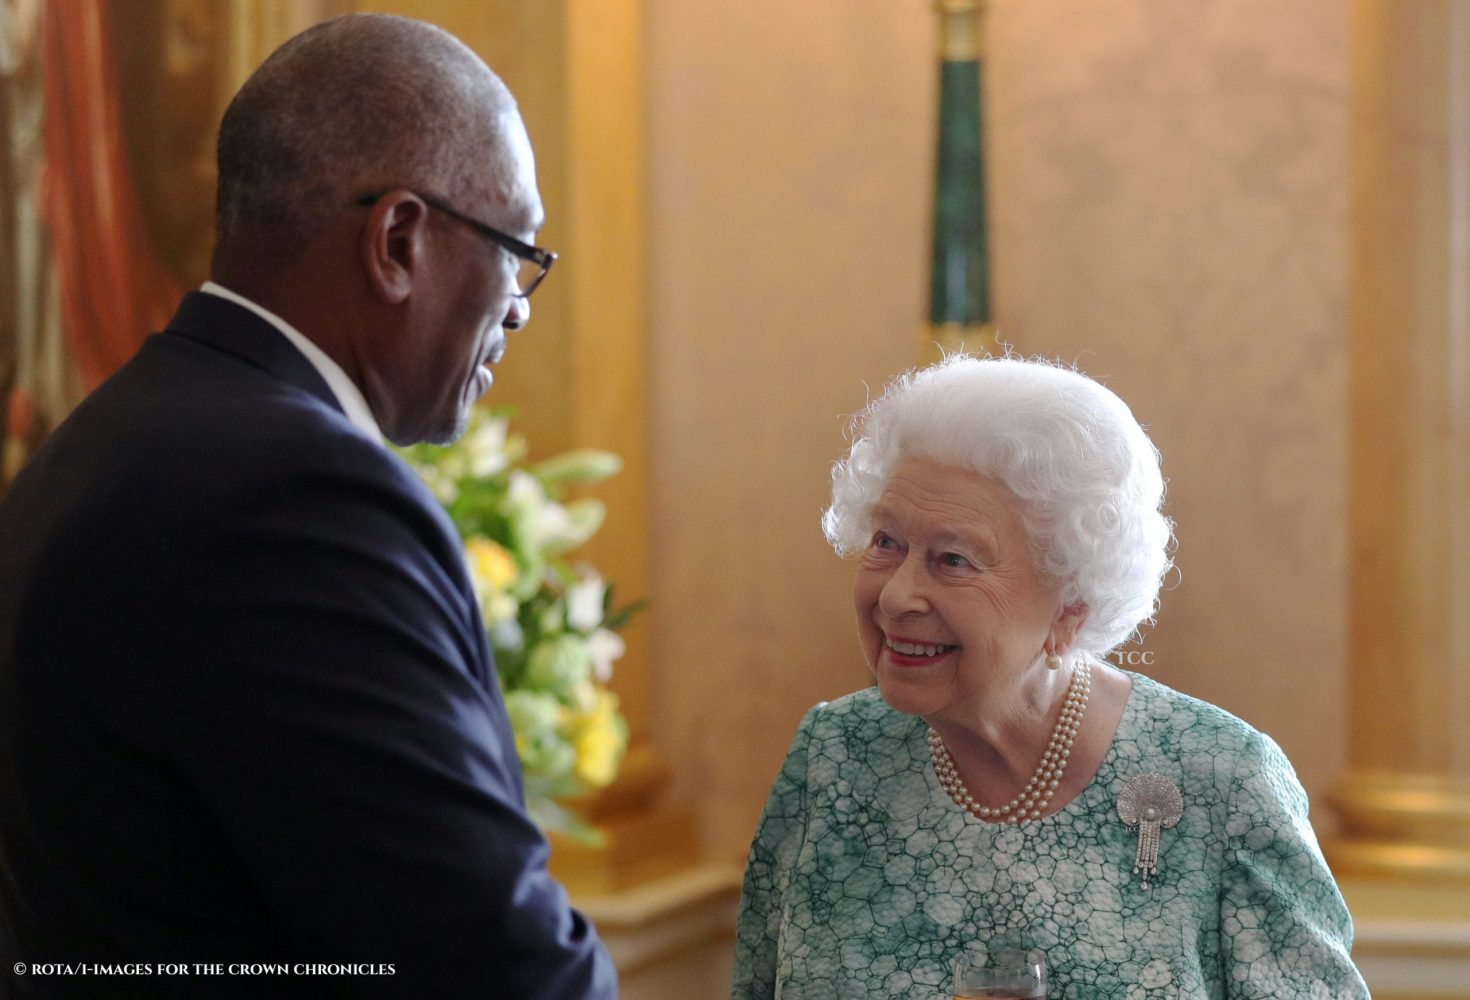 The Queen has been patron of the British Red Cross for 65 years